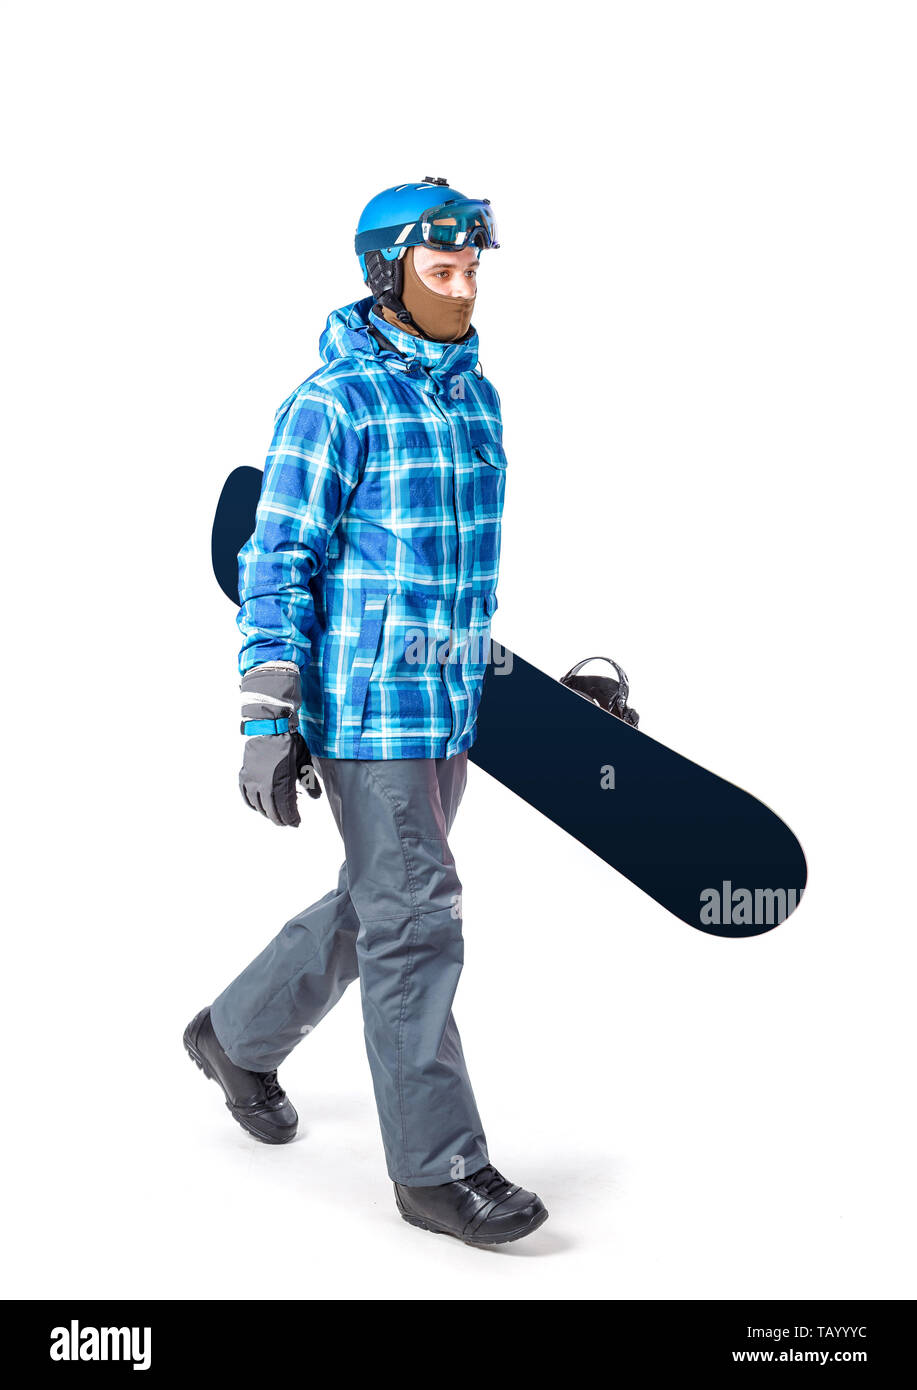 Portrait of young man in sportswear with snowboard isolated on a white background. - Stock Image